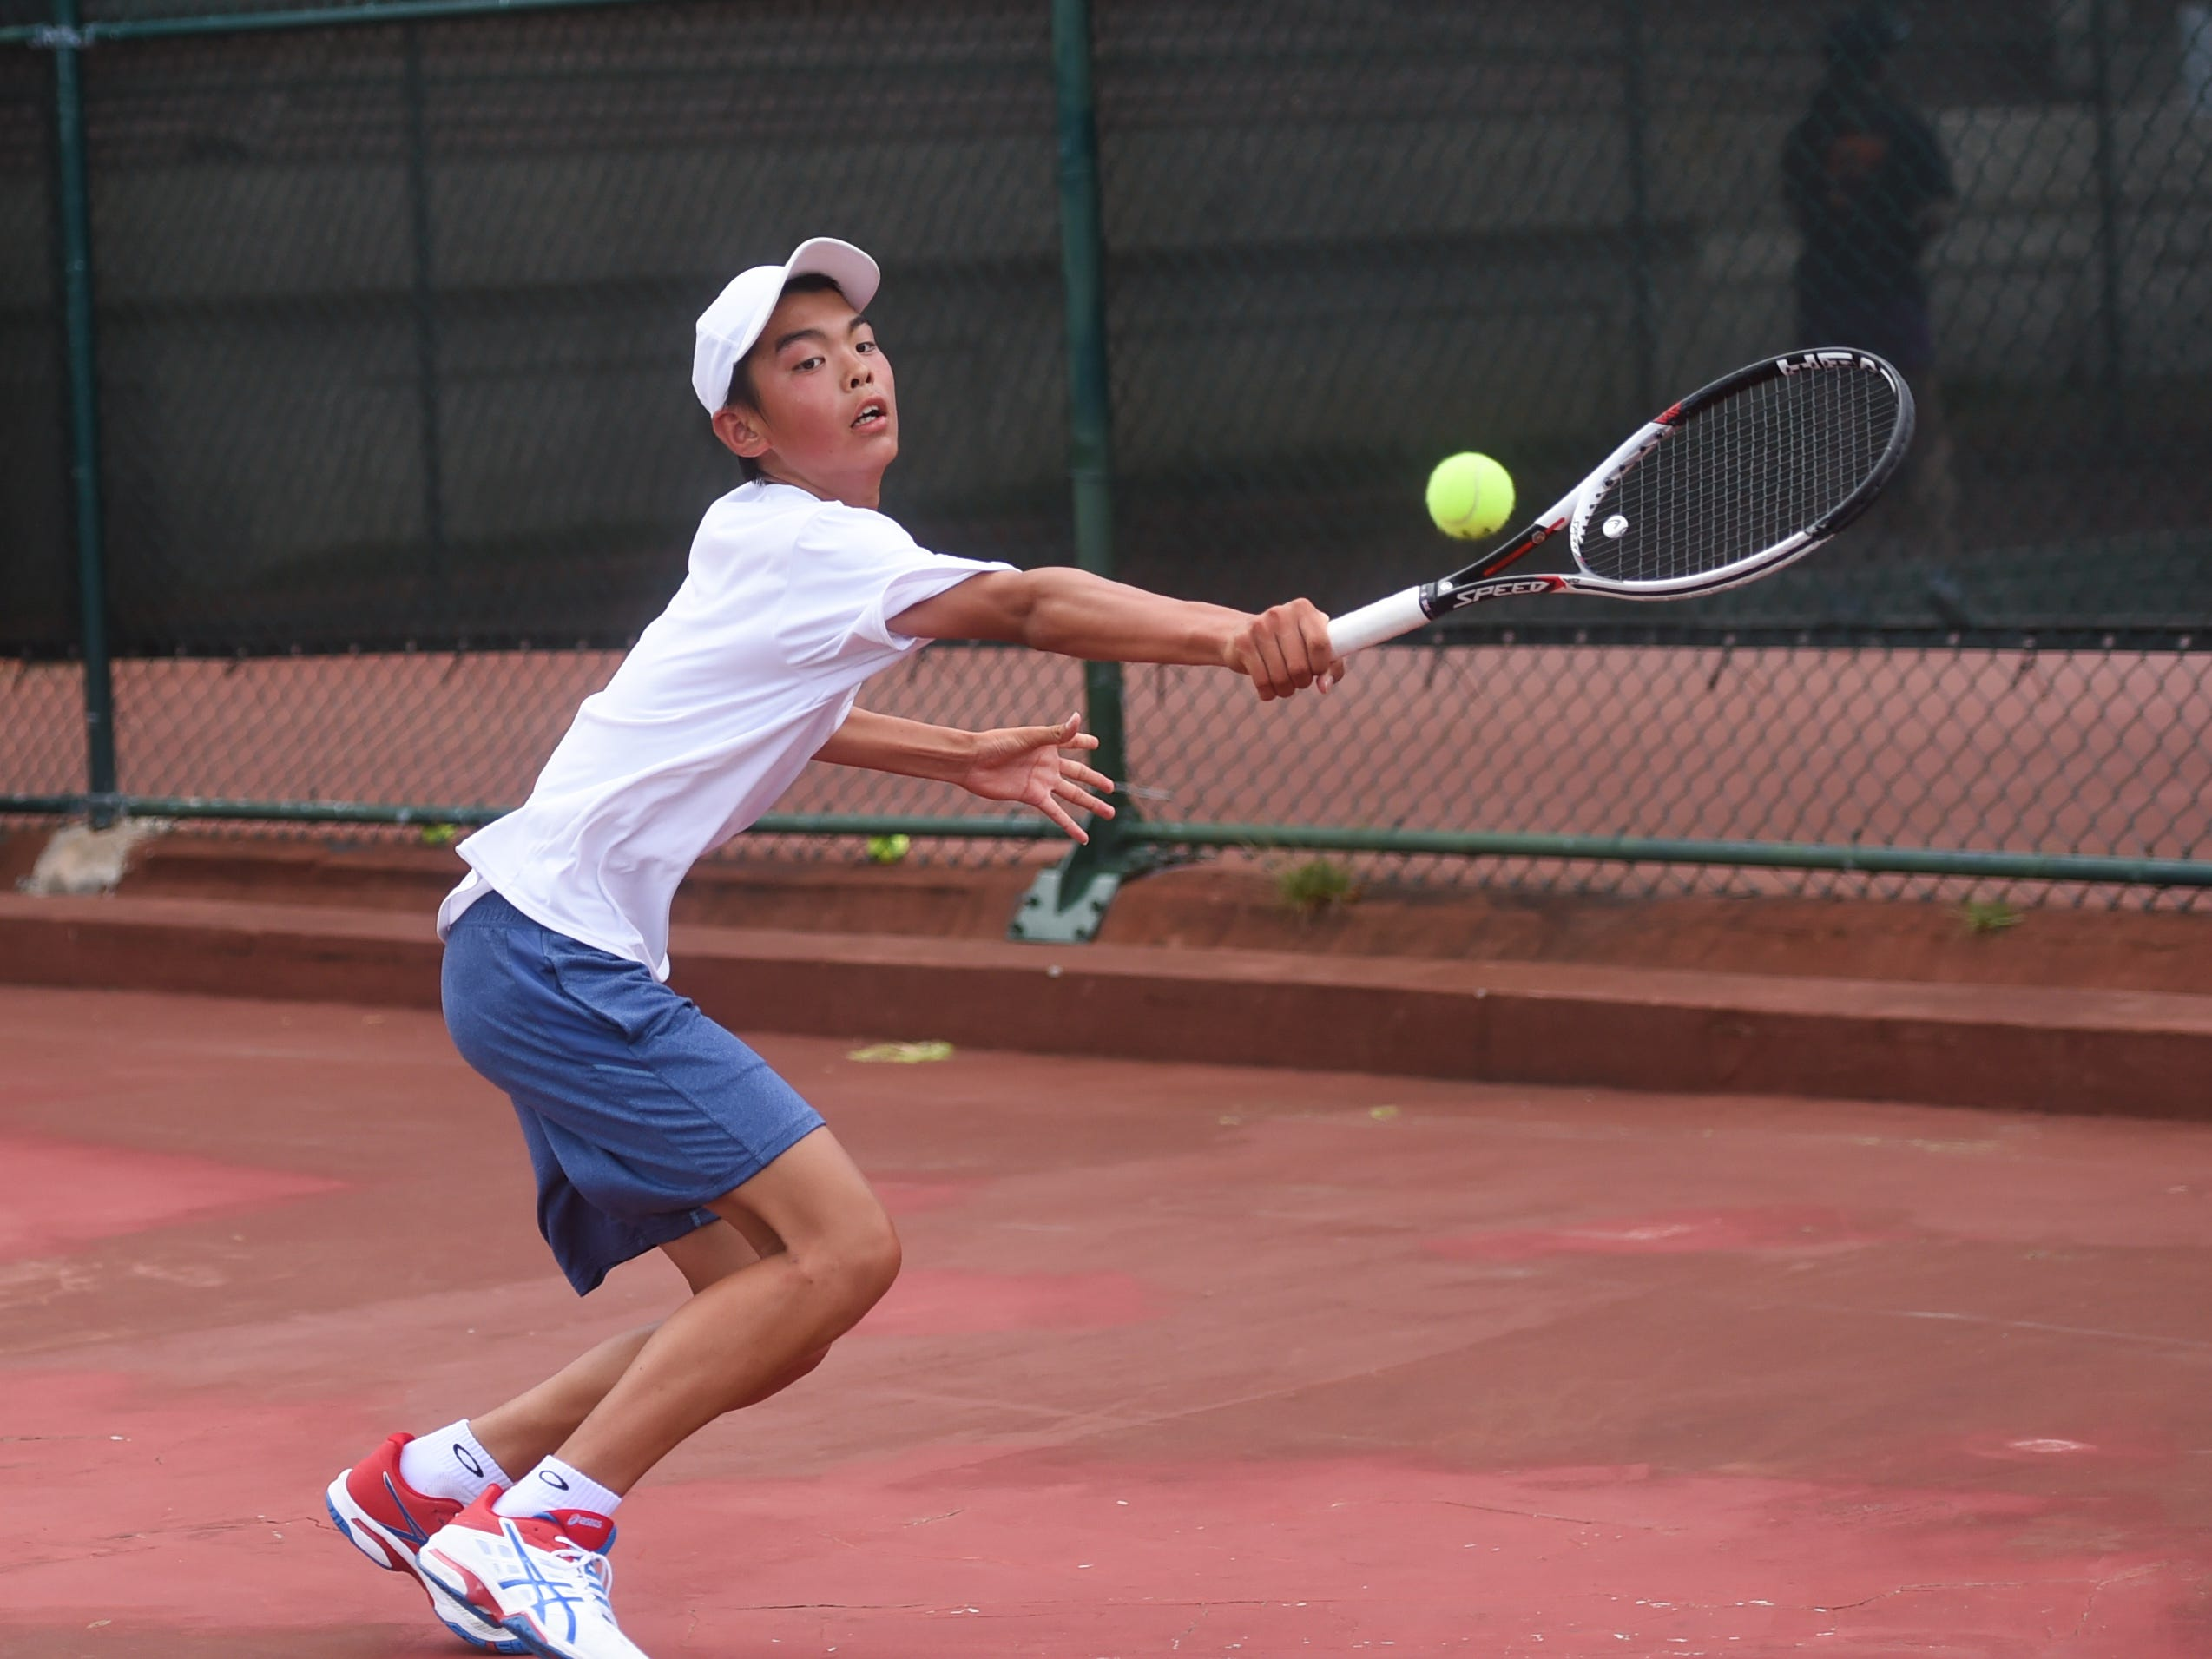 Kohdai Sasaki goes for a backhand shot during a 2019 Chuck E Cheese ITF World Tennis Tour Juniors qualifying match at the Hilton Guam Resort and Spa in Tumon, May 12, 2019.